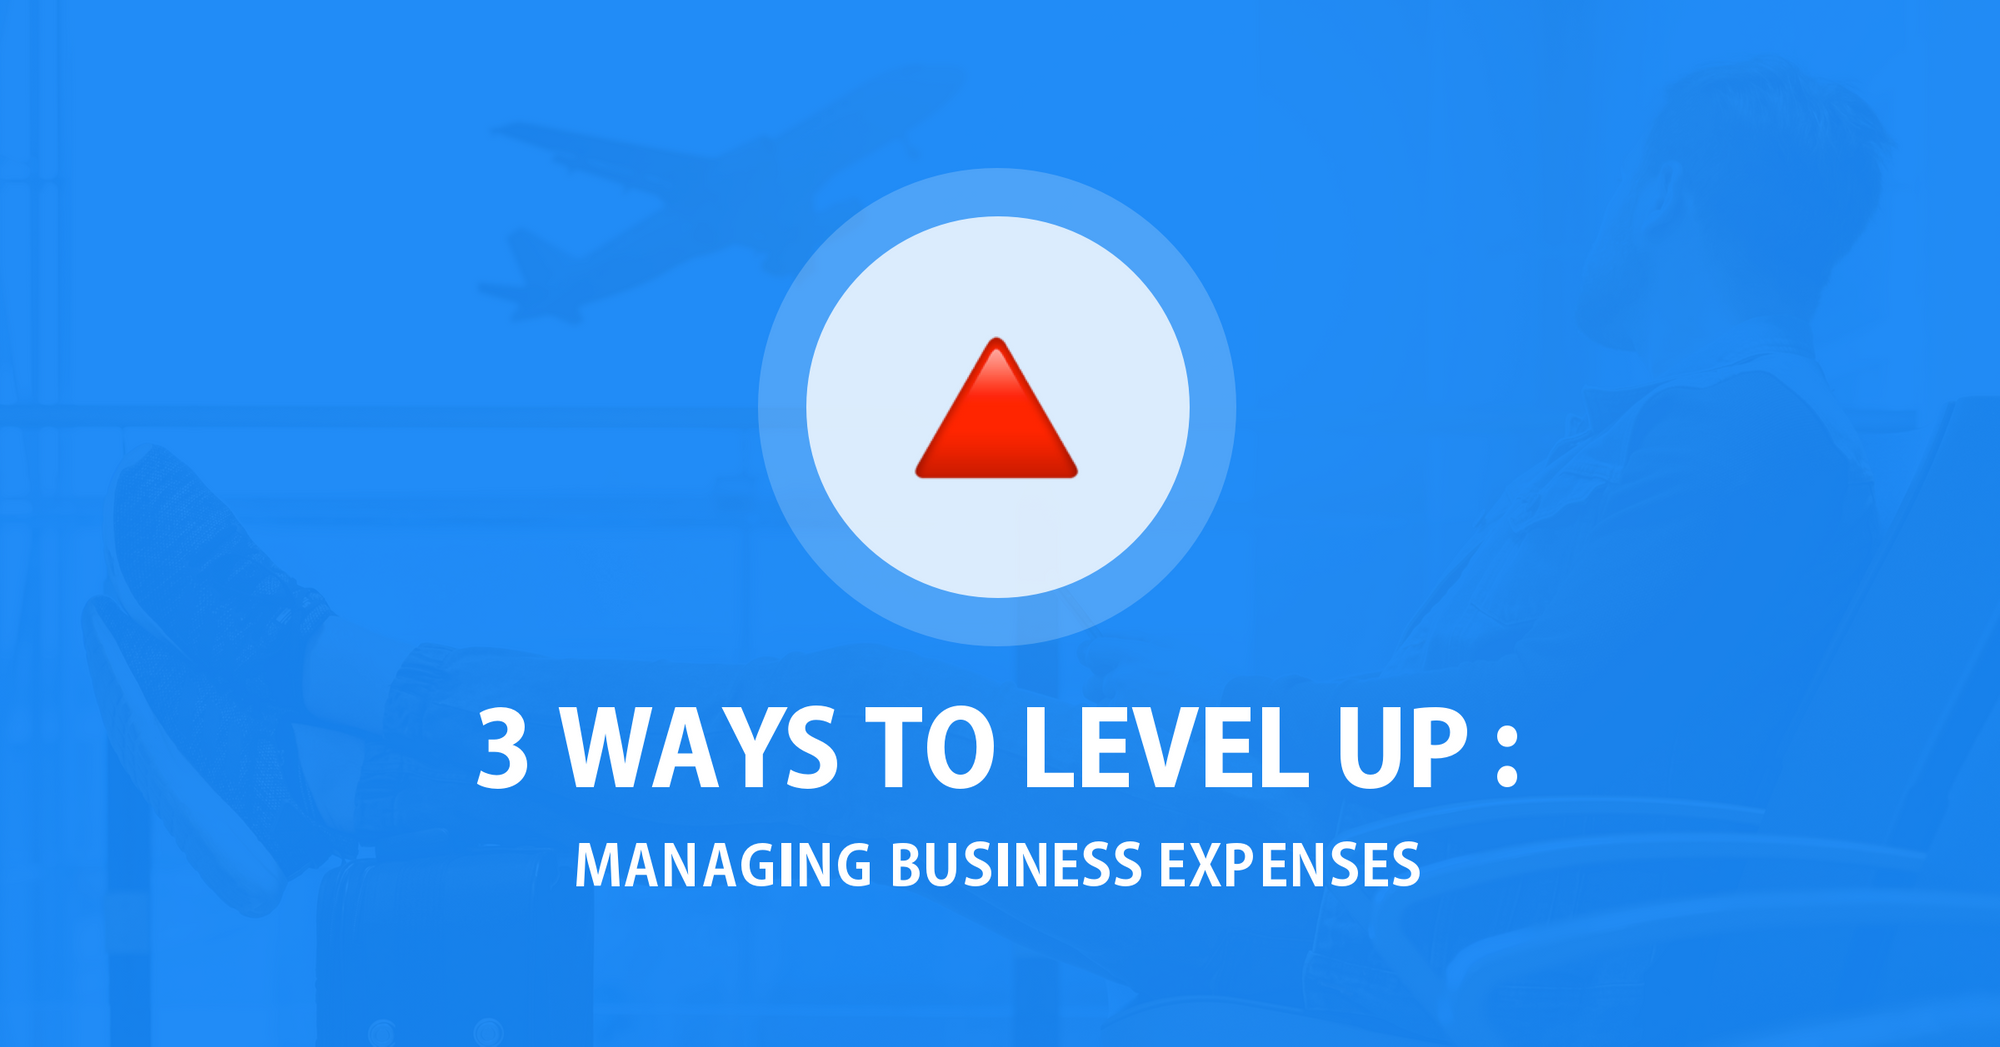 Managing business expenses: 3 ways to help your team level up